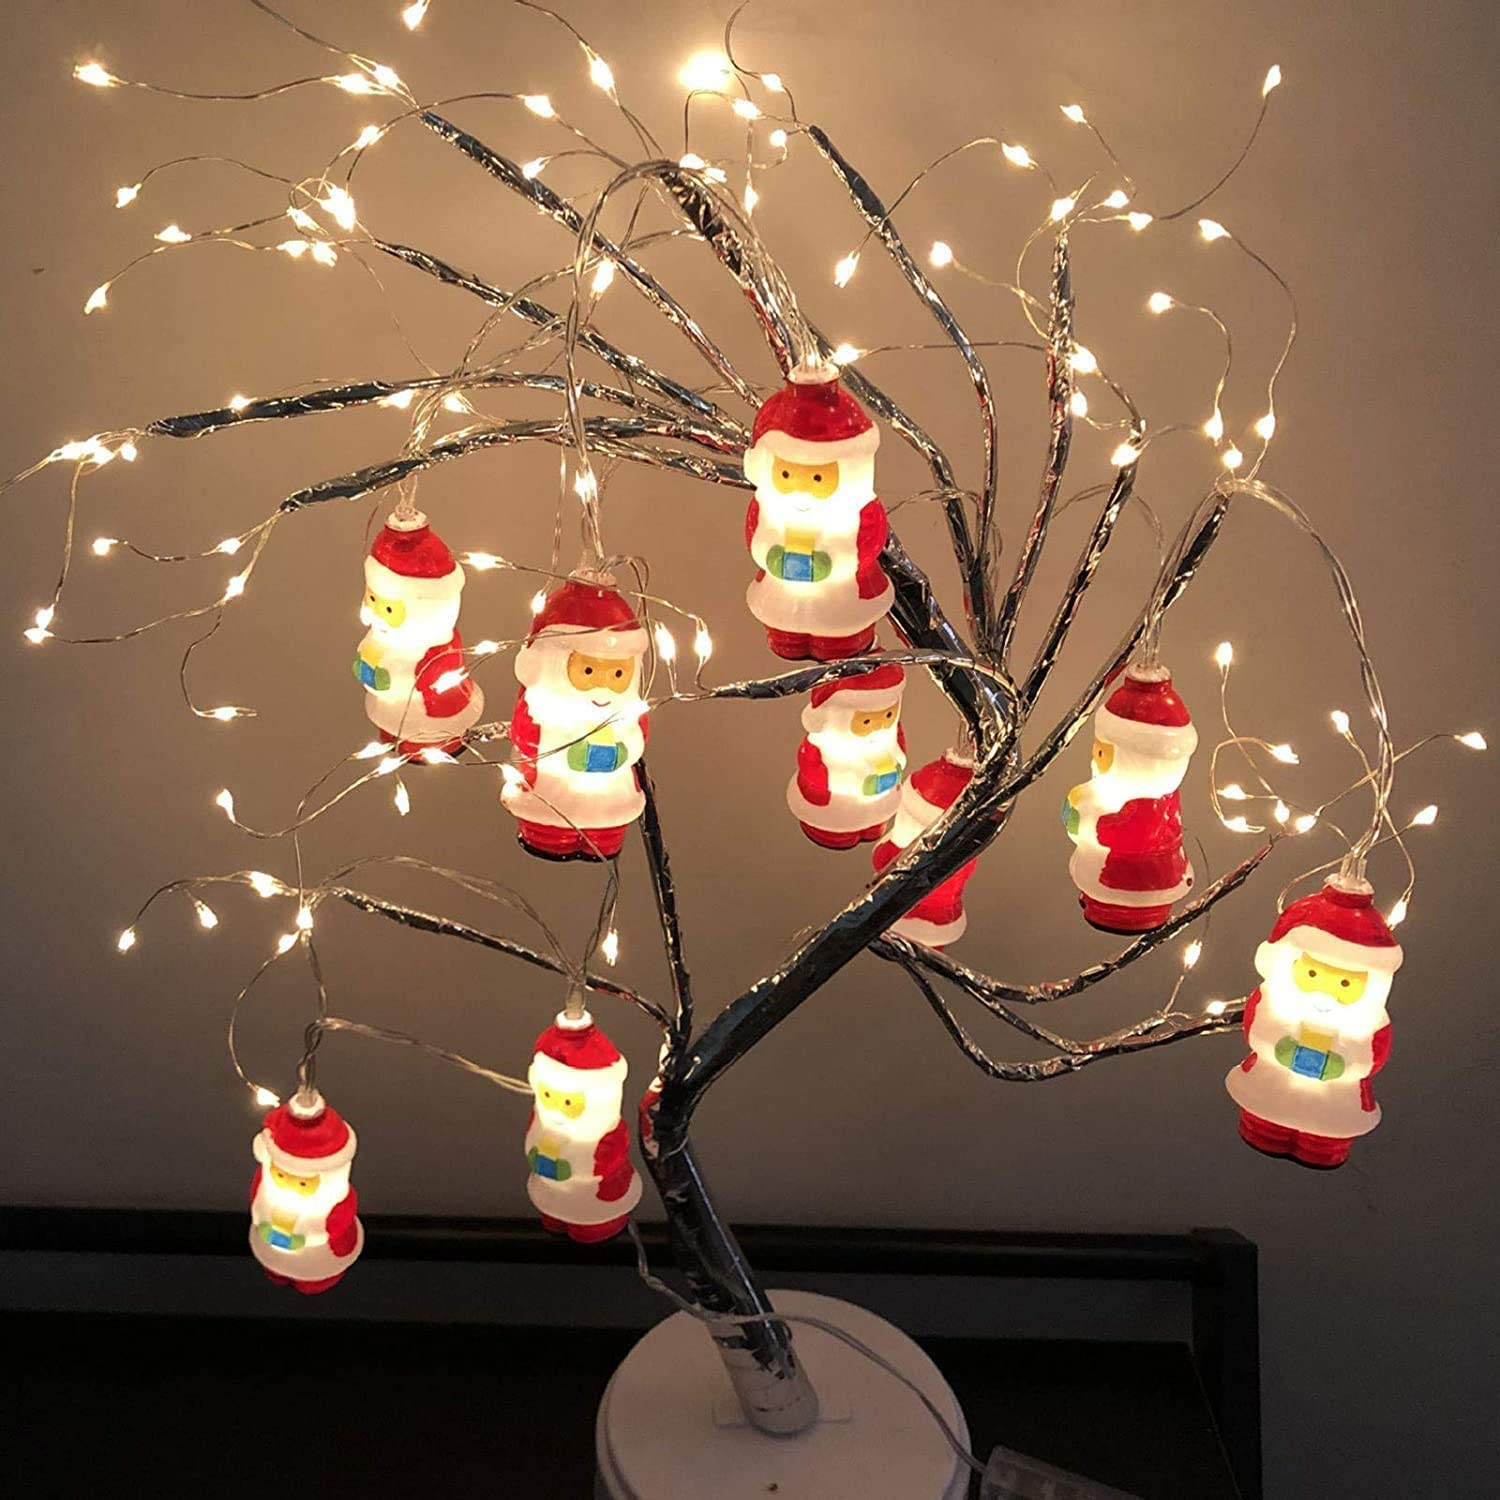 Santa Claus String Battery Operated Lights with 10 LEDs,for Indoor Outdoor Christmas Tree Garden Party Livingroom Bedroom Decoration 3M LED Christmas Snowman LED Lights